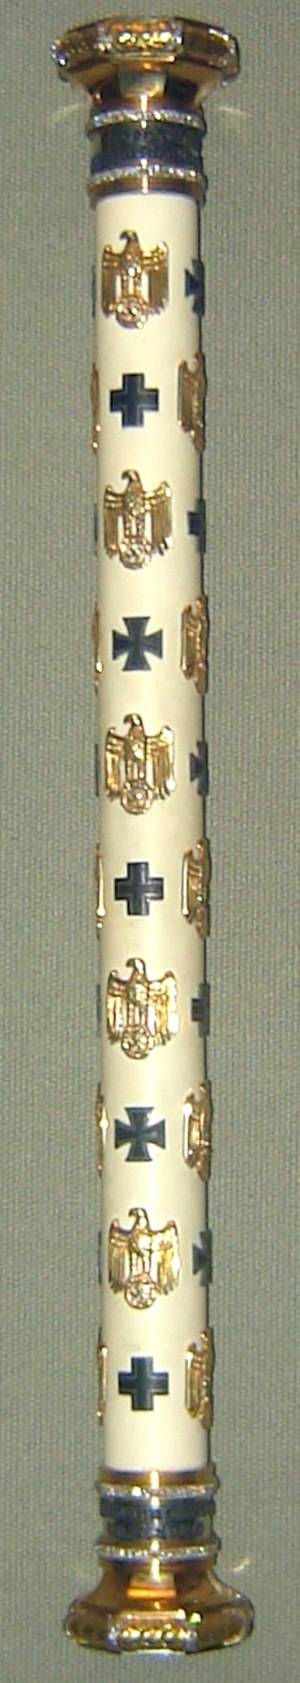 Reichsmarschall - The original baton of Reichsmarschall Hermann Göring shown in the West Point Museum